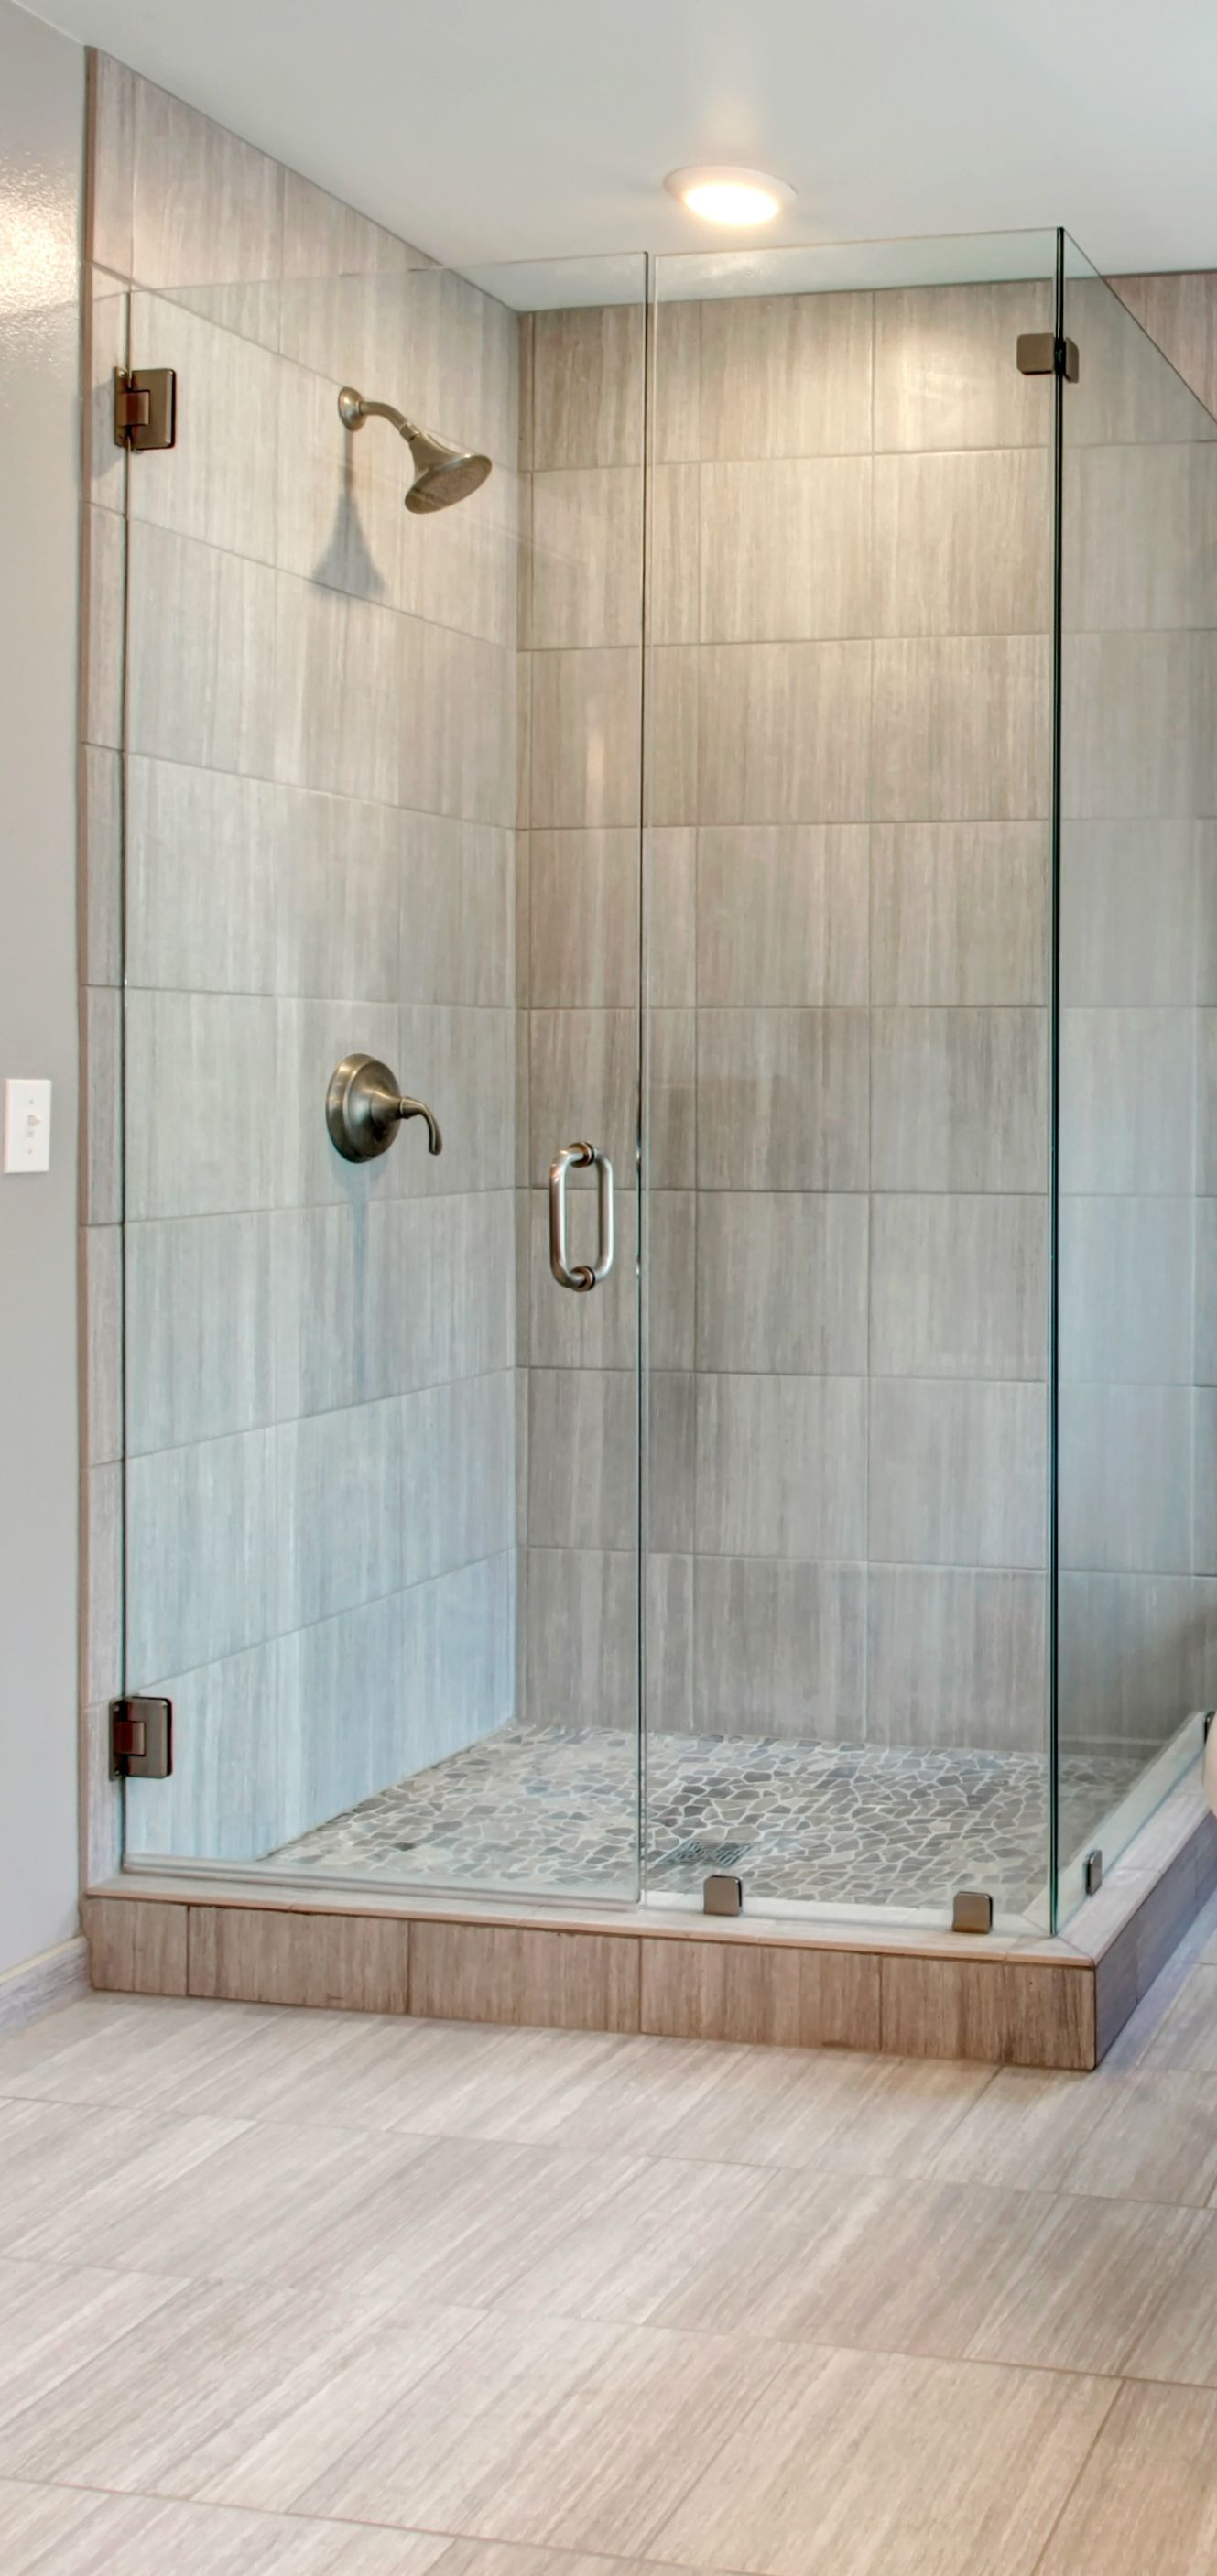 Small Bathroom Ideas With Shower Stall Wainscoting Garage Southwestern Various You Can Get Home Interiors Ide Kamar Mandi Kamar Mandi Utama Desain